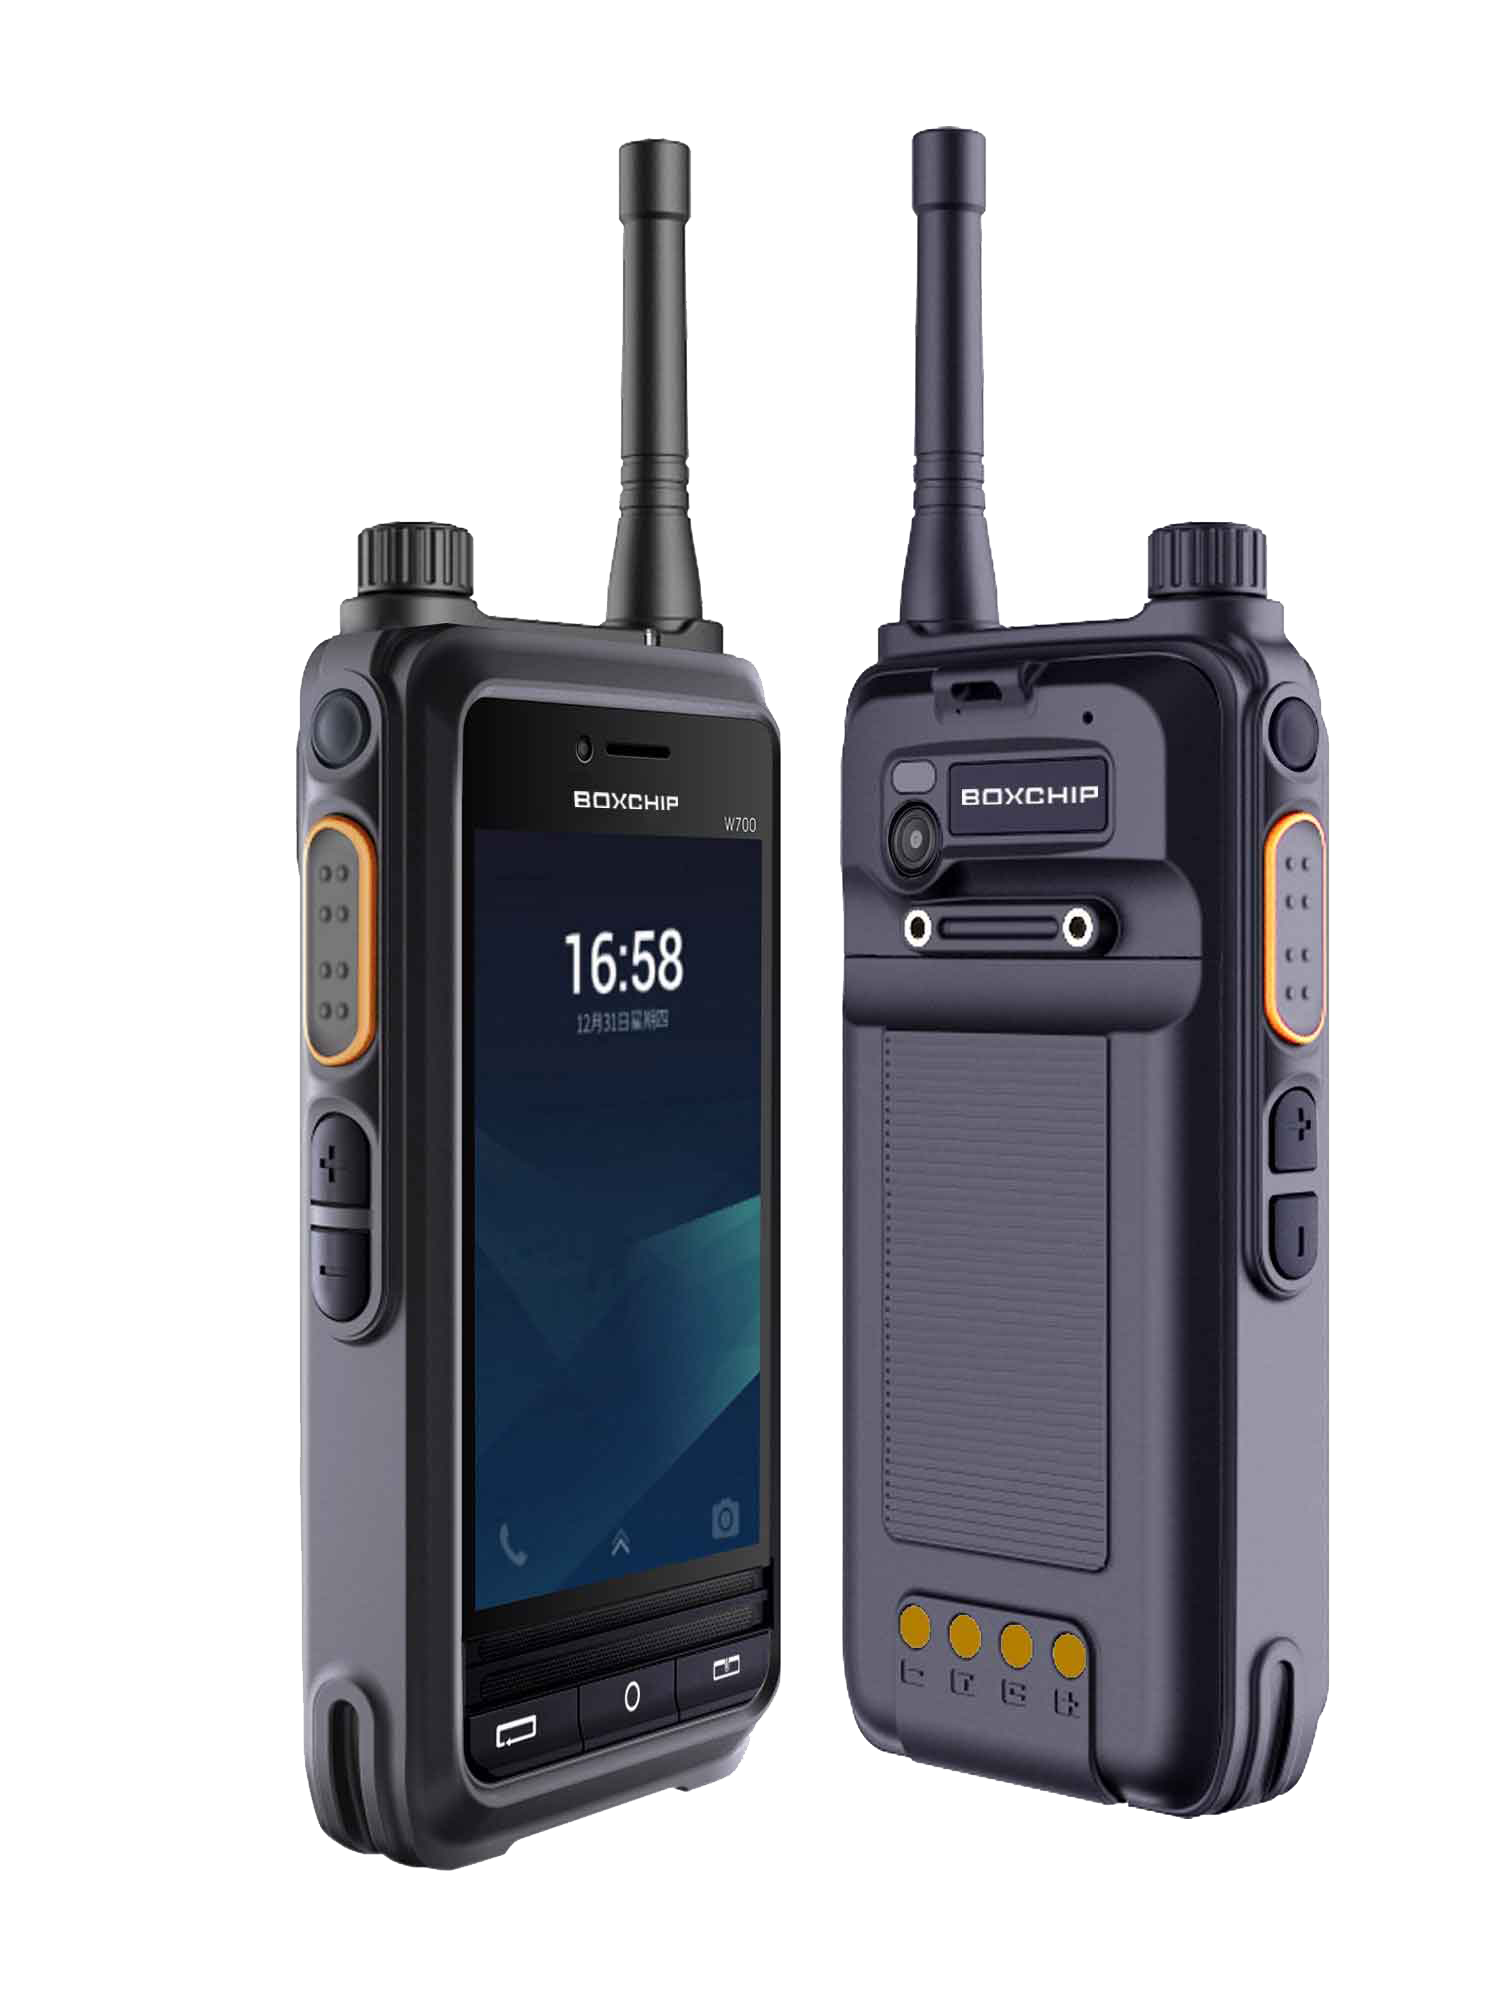 digital dual band mobile radio